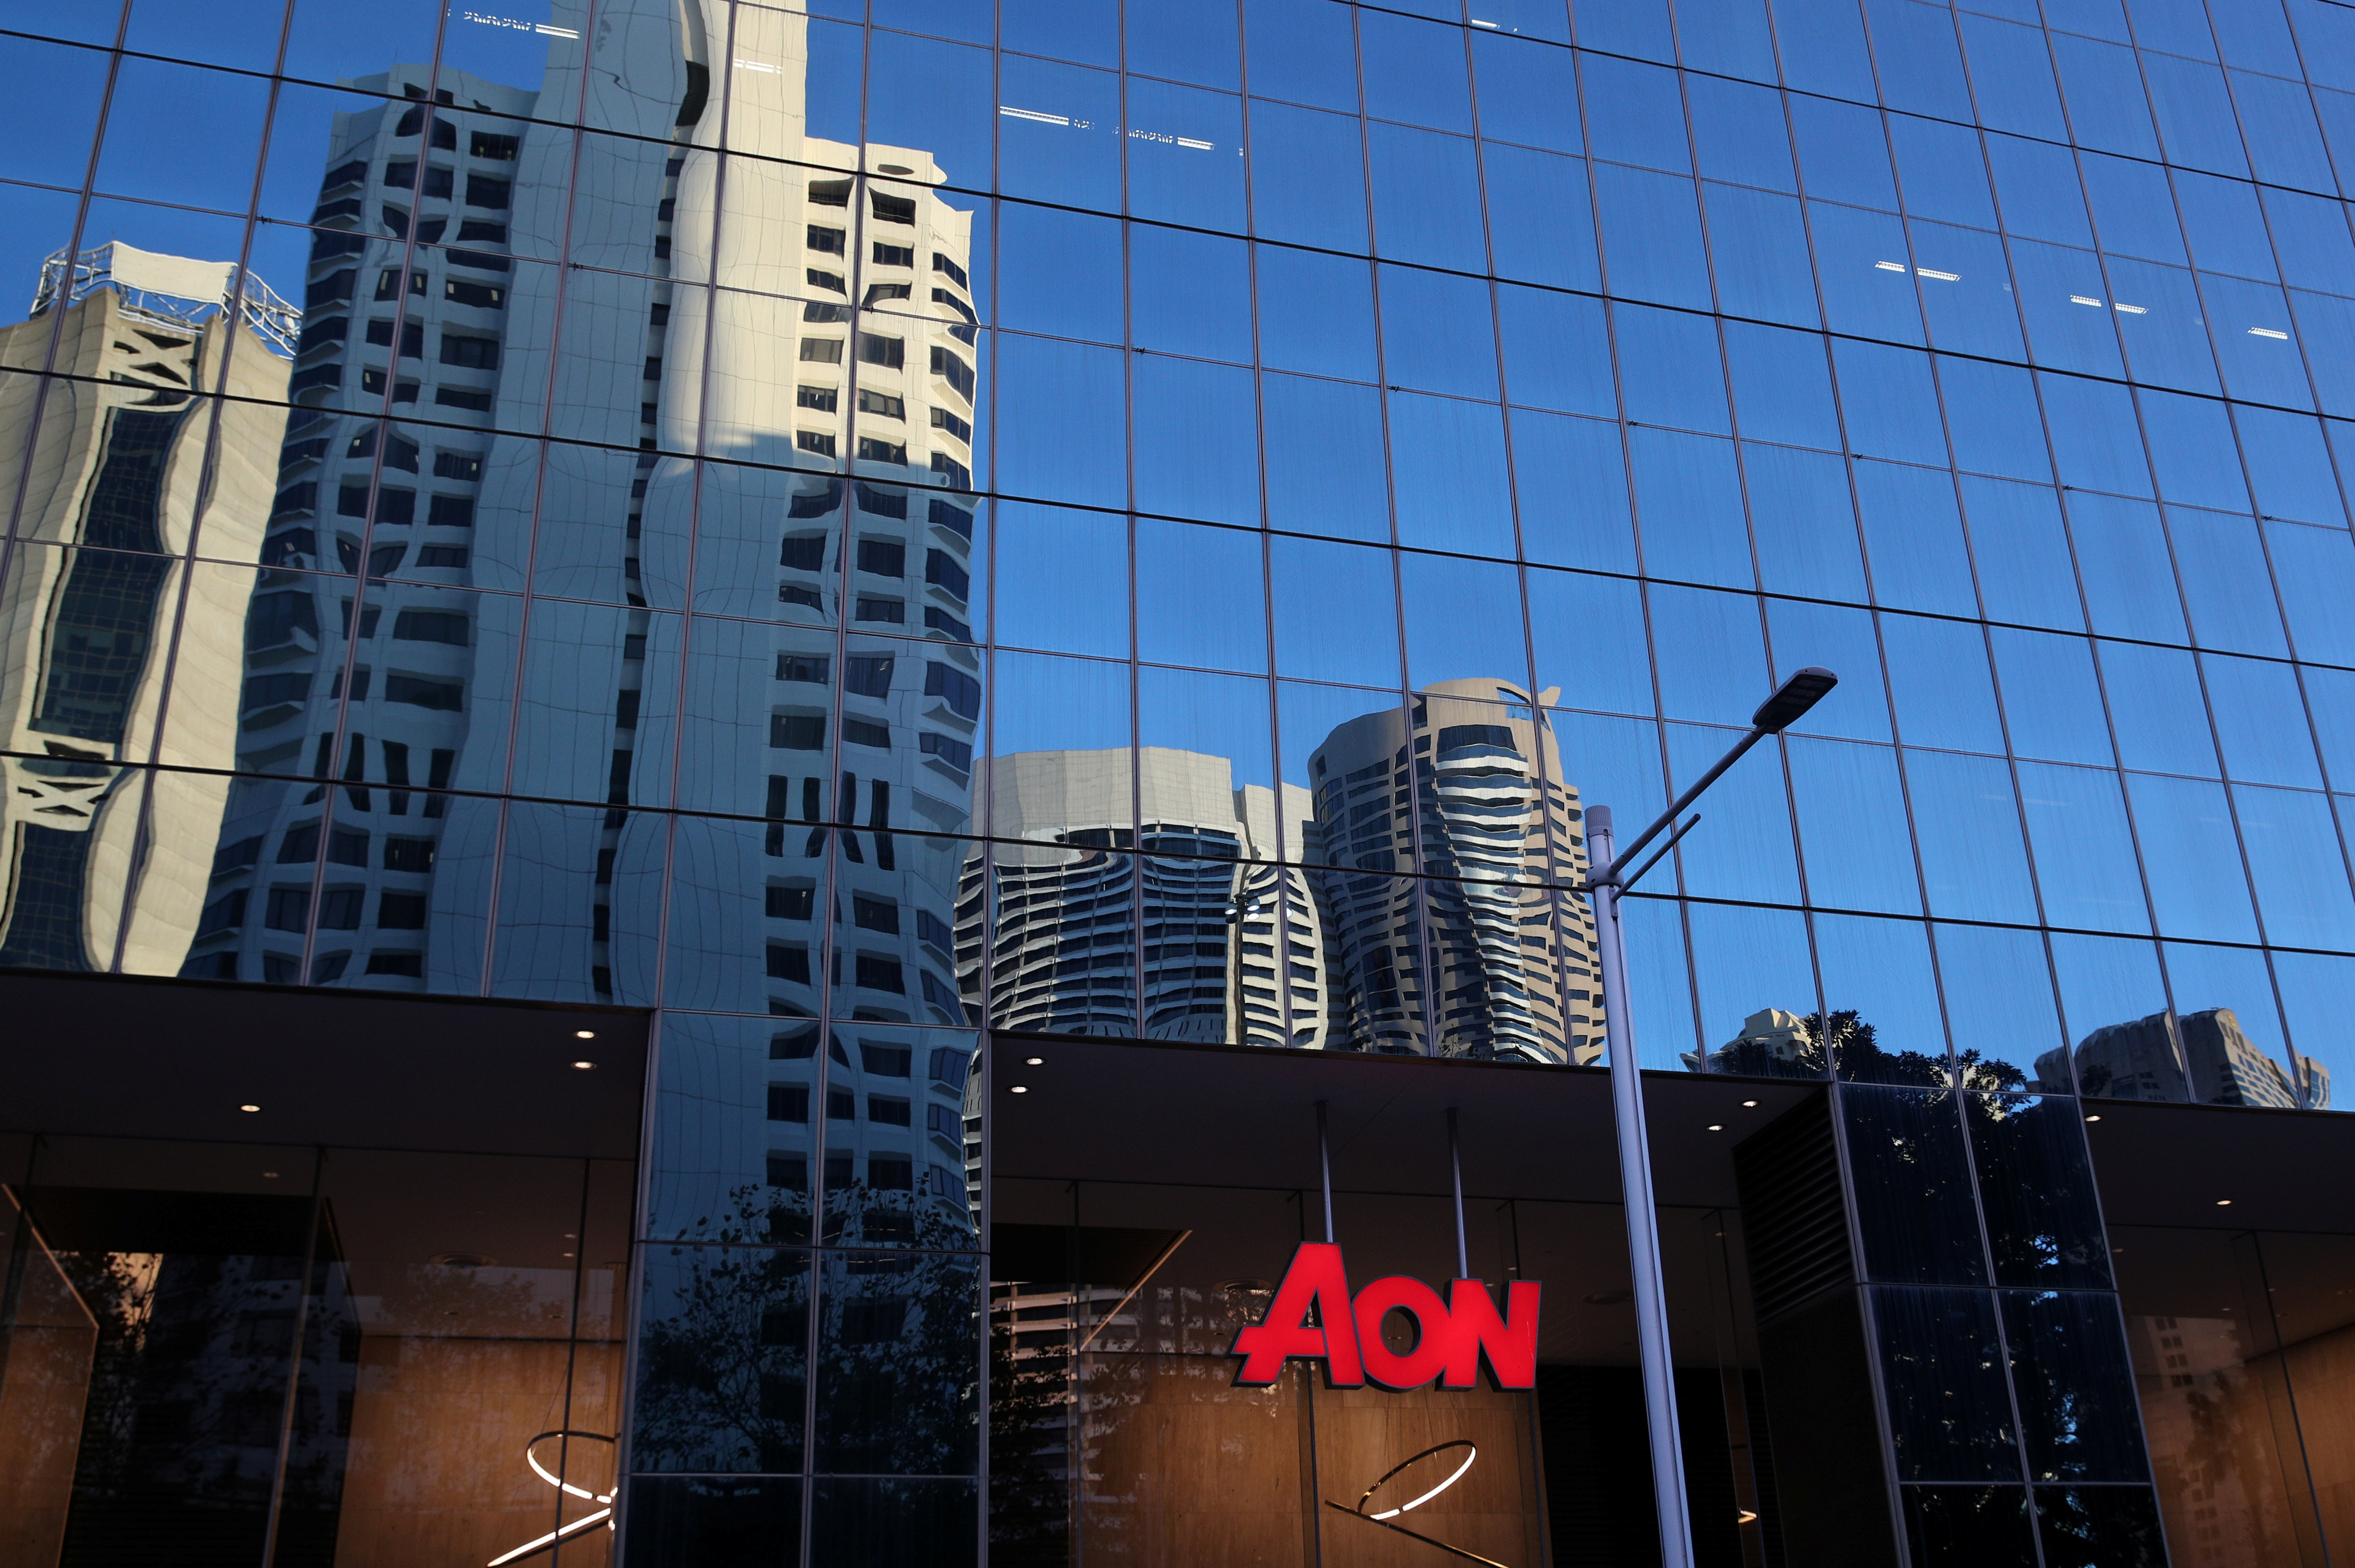 U.S. sues to stop Aon's purchase of Willis Towers Watson